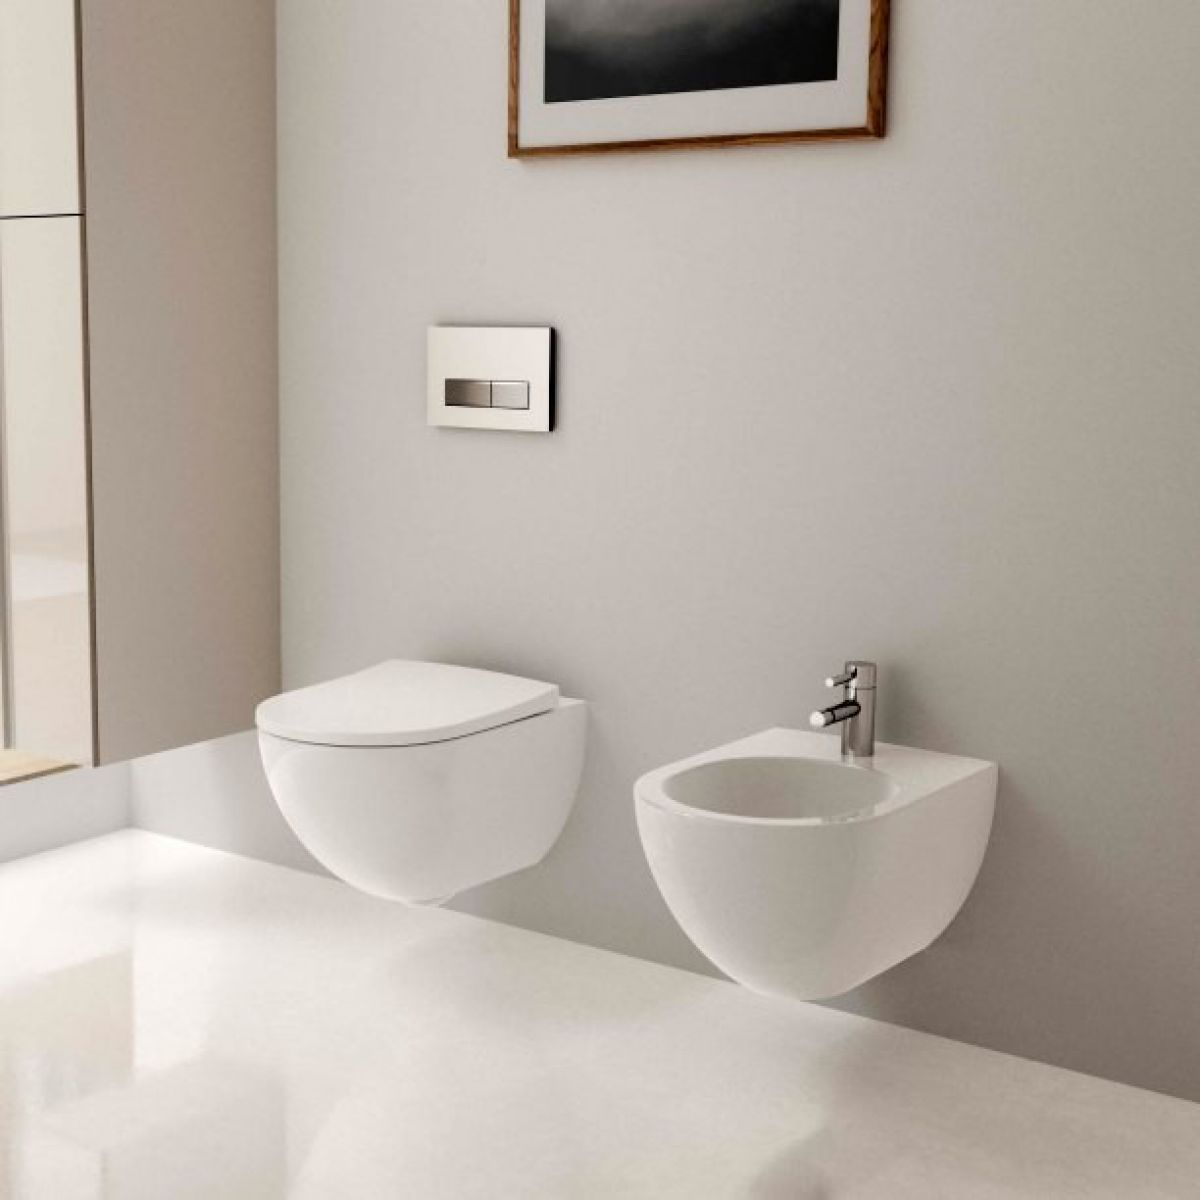 Toilets And Bathrooms: Geberit Acanto Wall Hung Toliet Rimfree